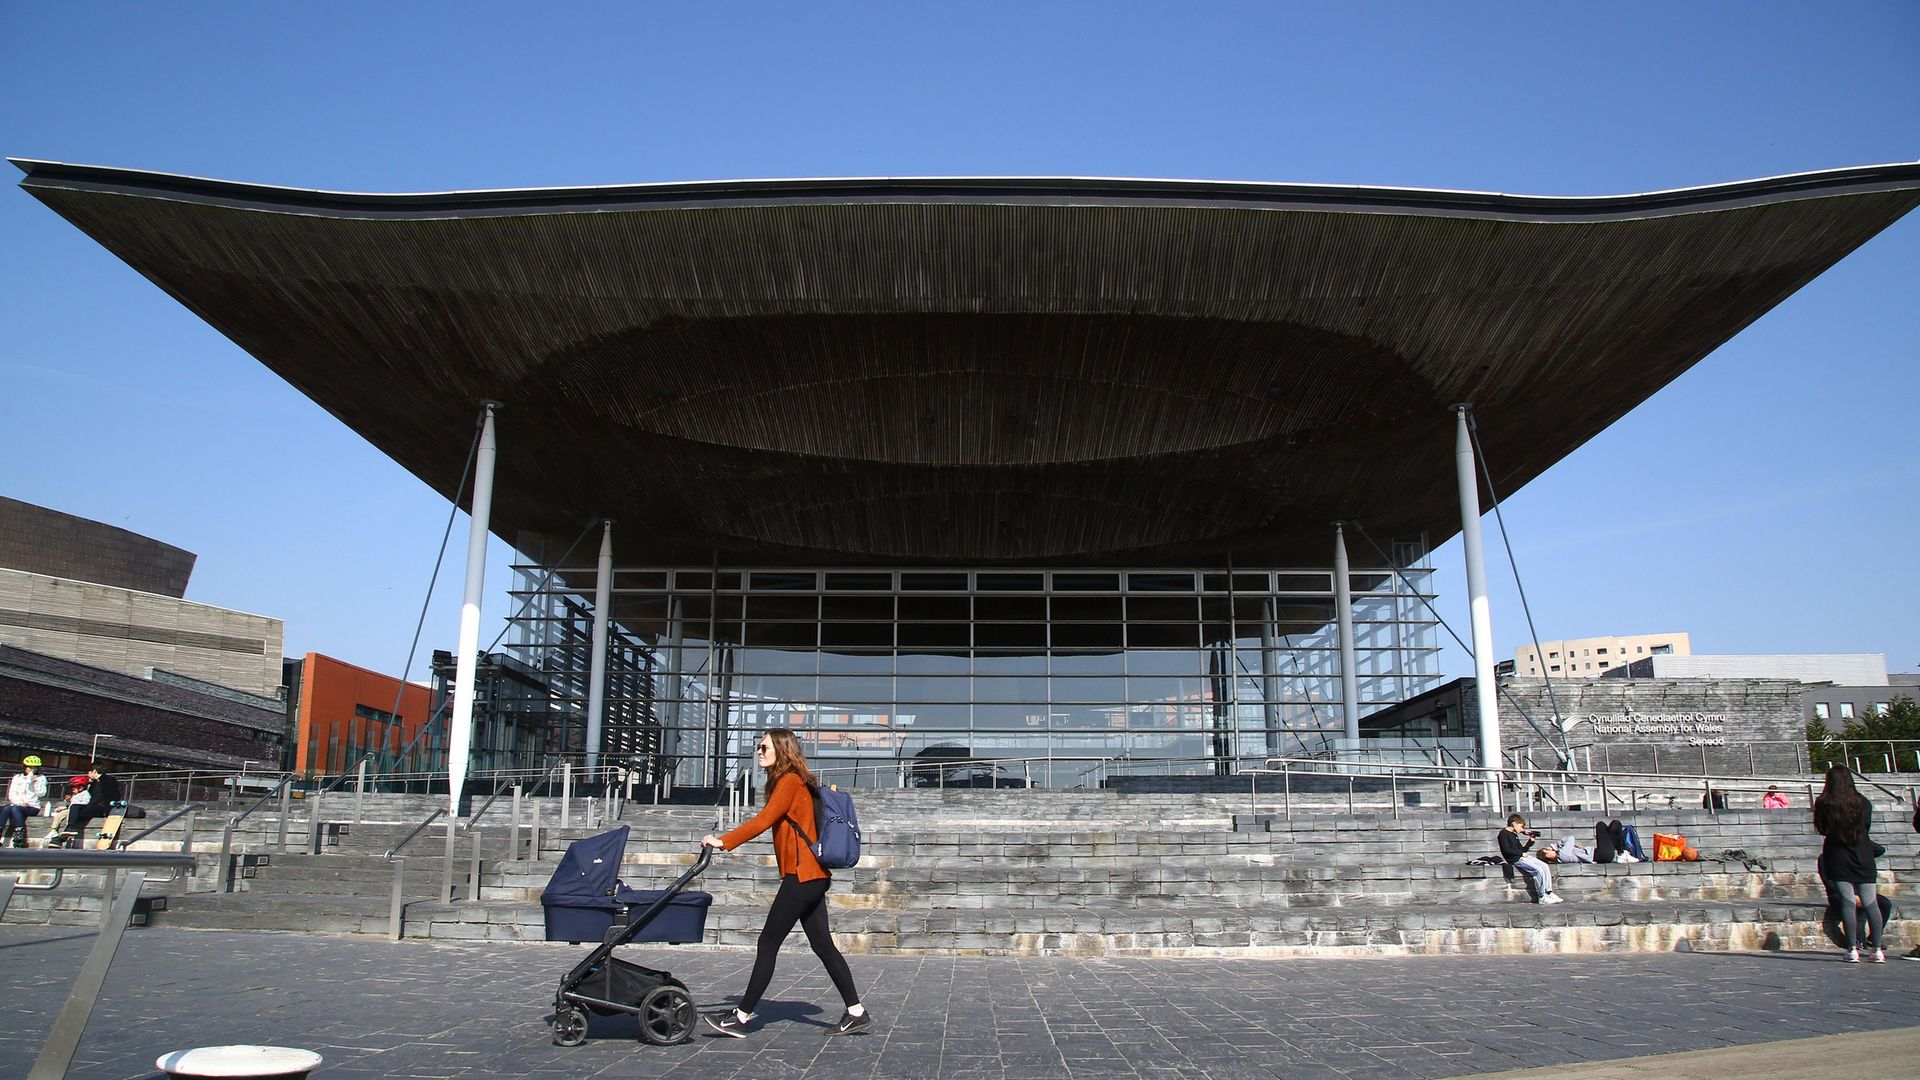 A woman pushes a pram past the senedd building in Cardiff Bay - Credit: AFP via Getty Images